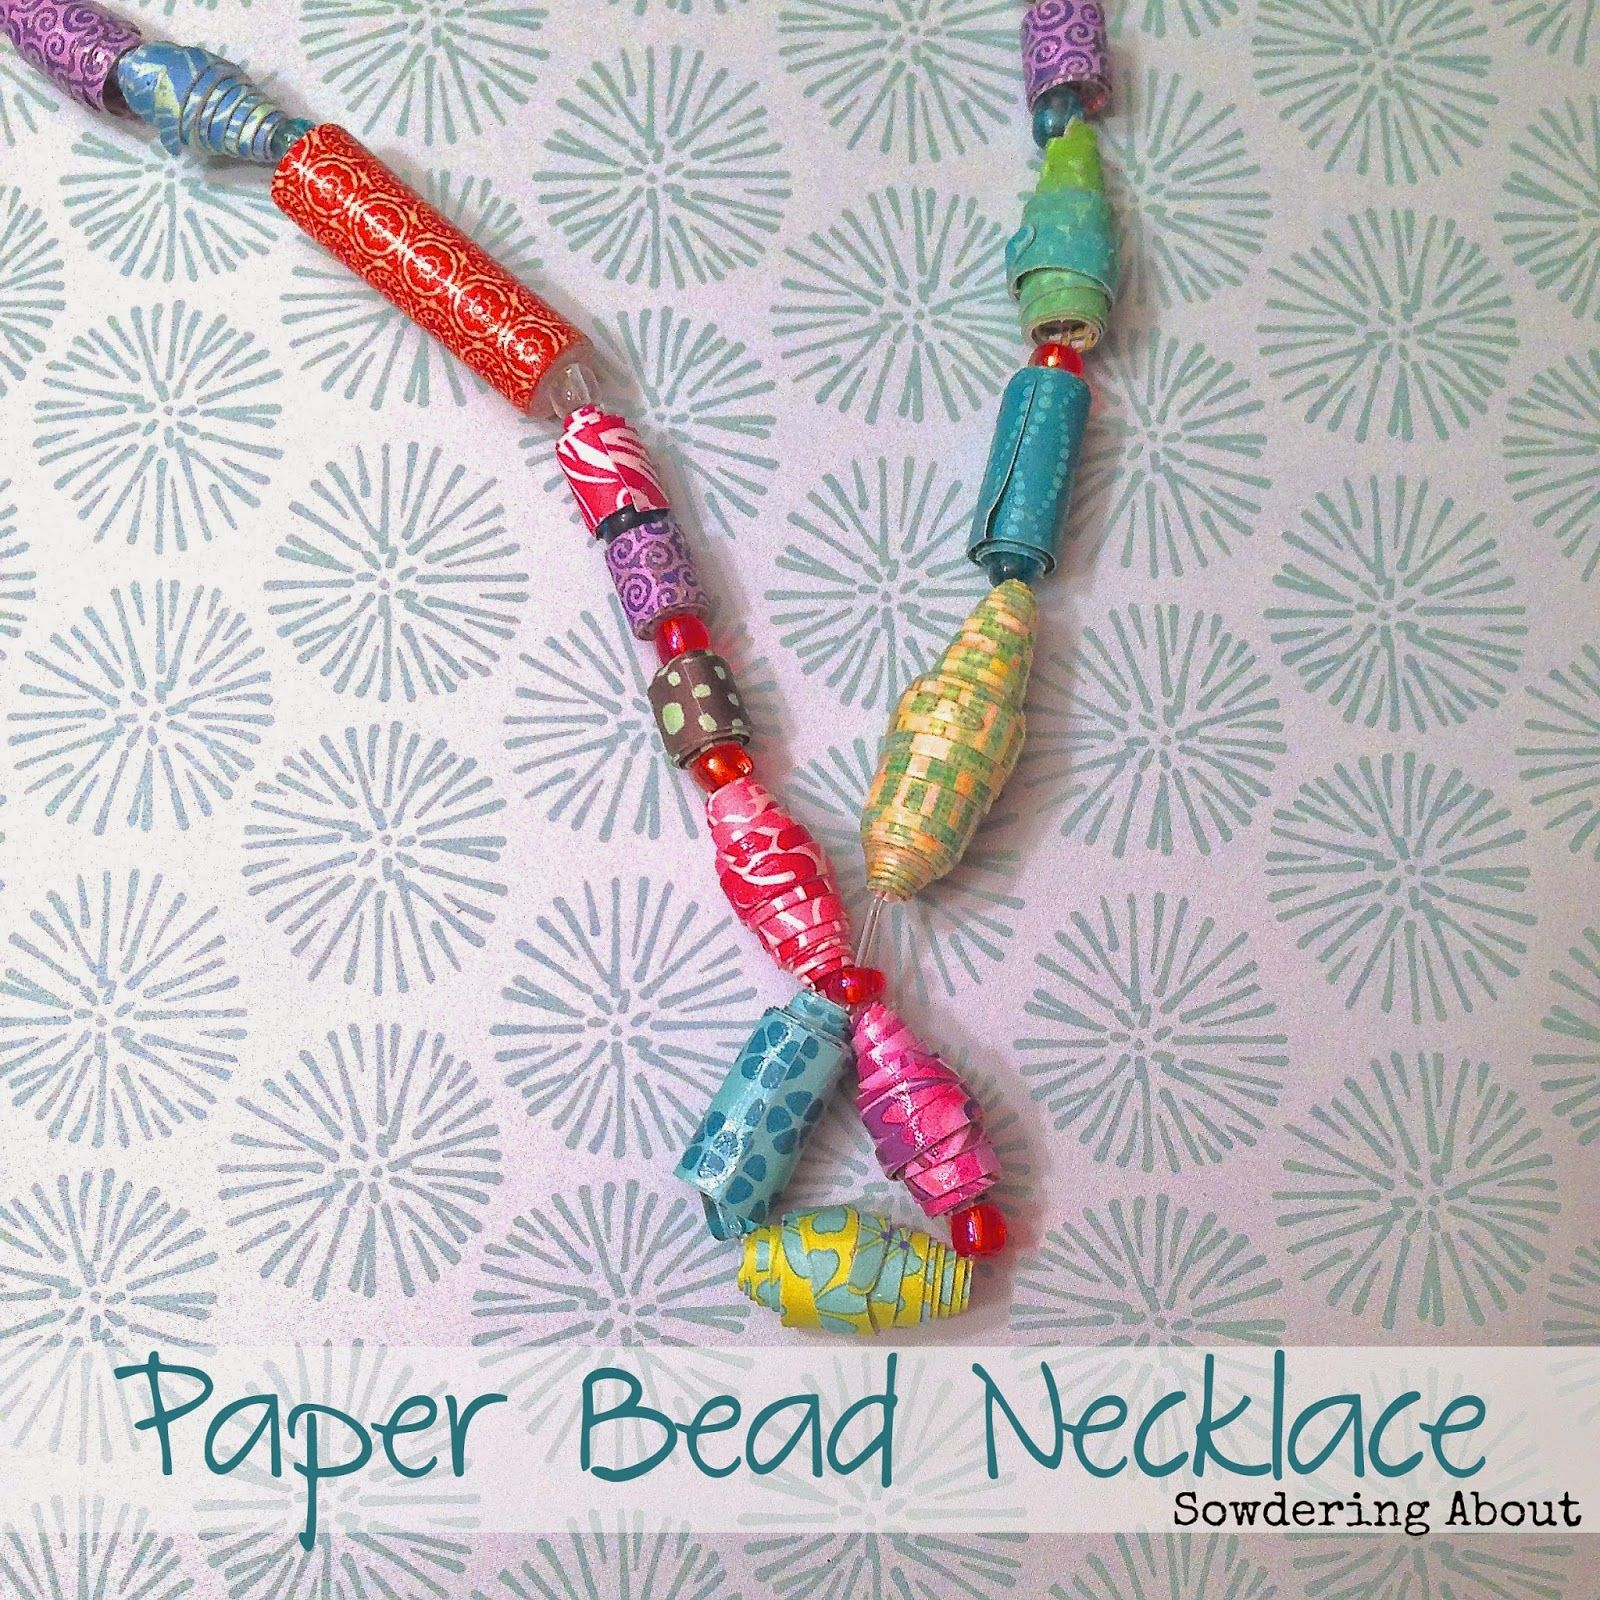 60 Creative Crafts for Small Children | Paper beads, Crafts at home ...